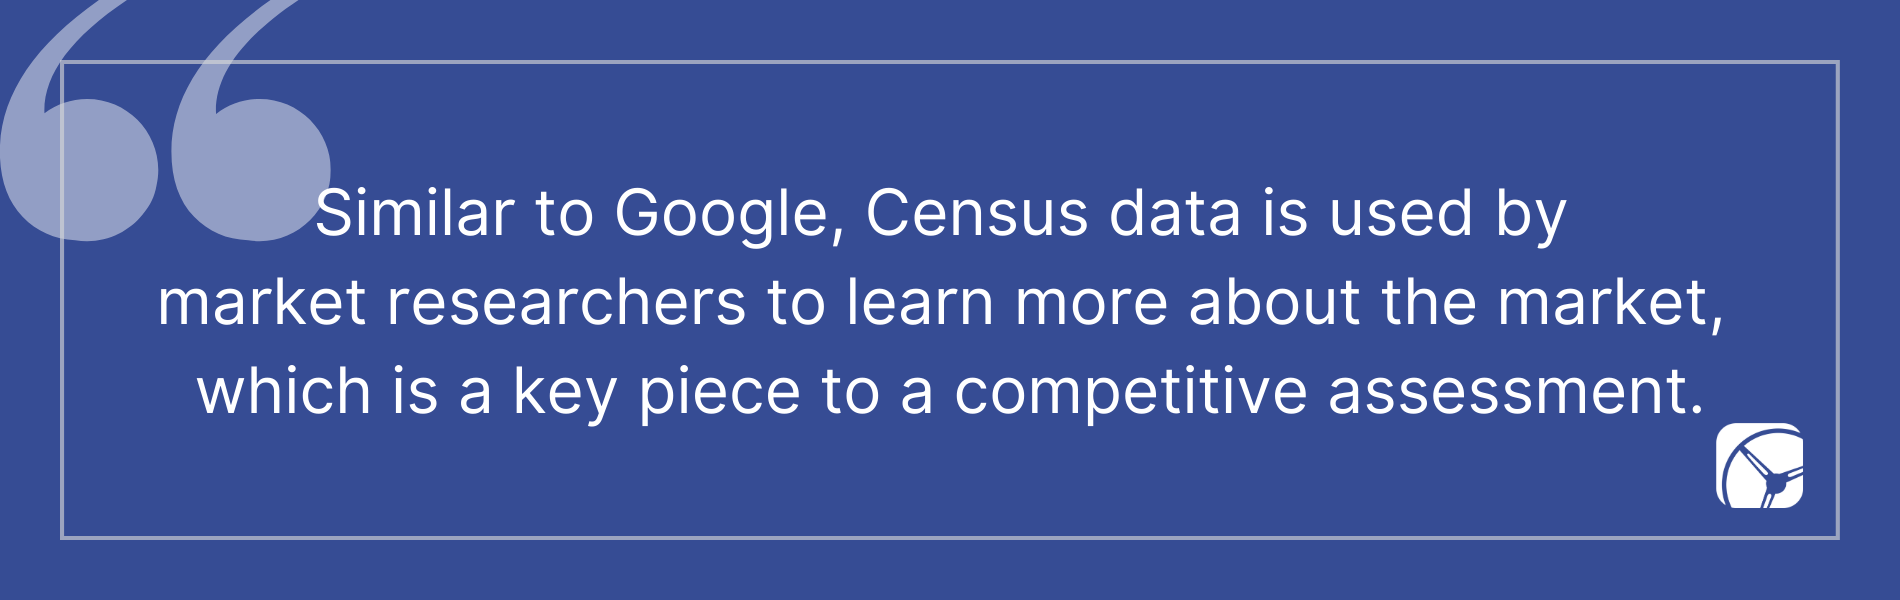 Similar to Google, Census data is used by  market researchers to learn more about the market,  which is a key piece to a competitive assessment.